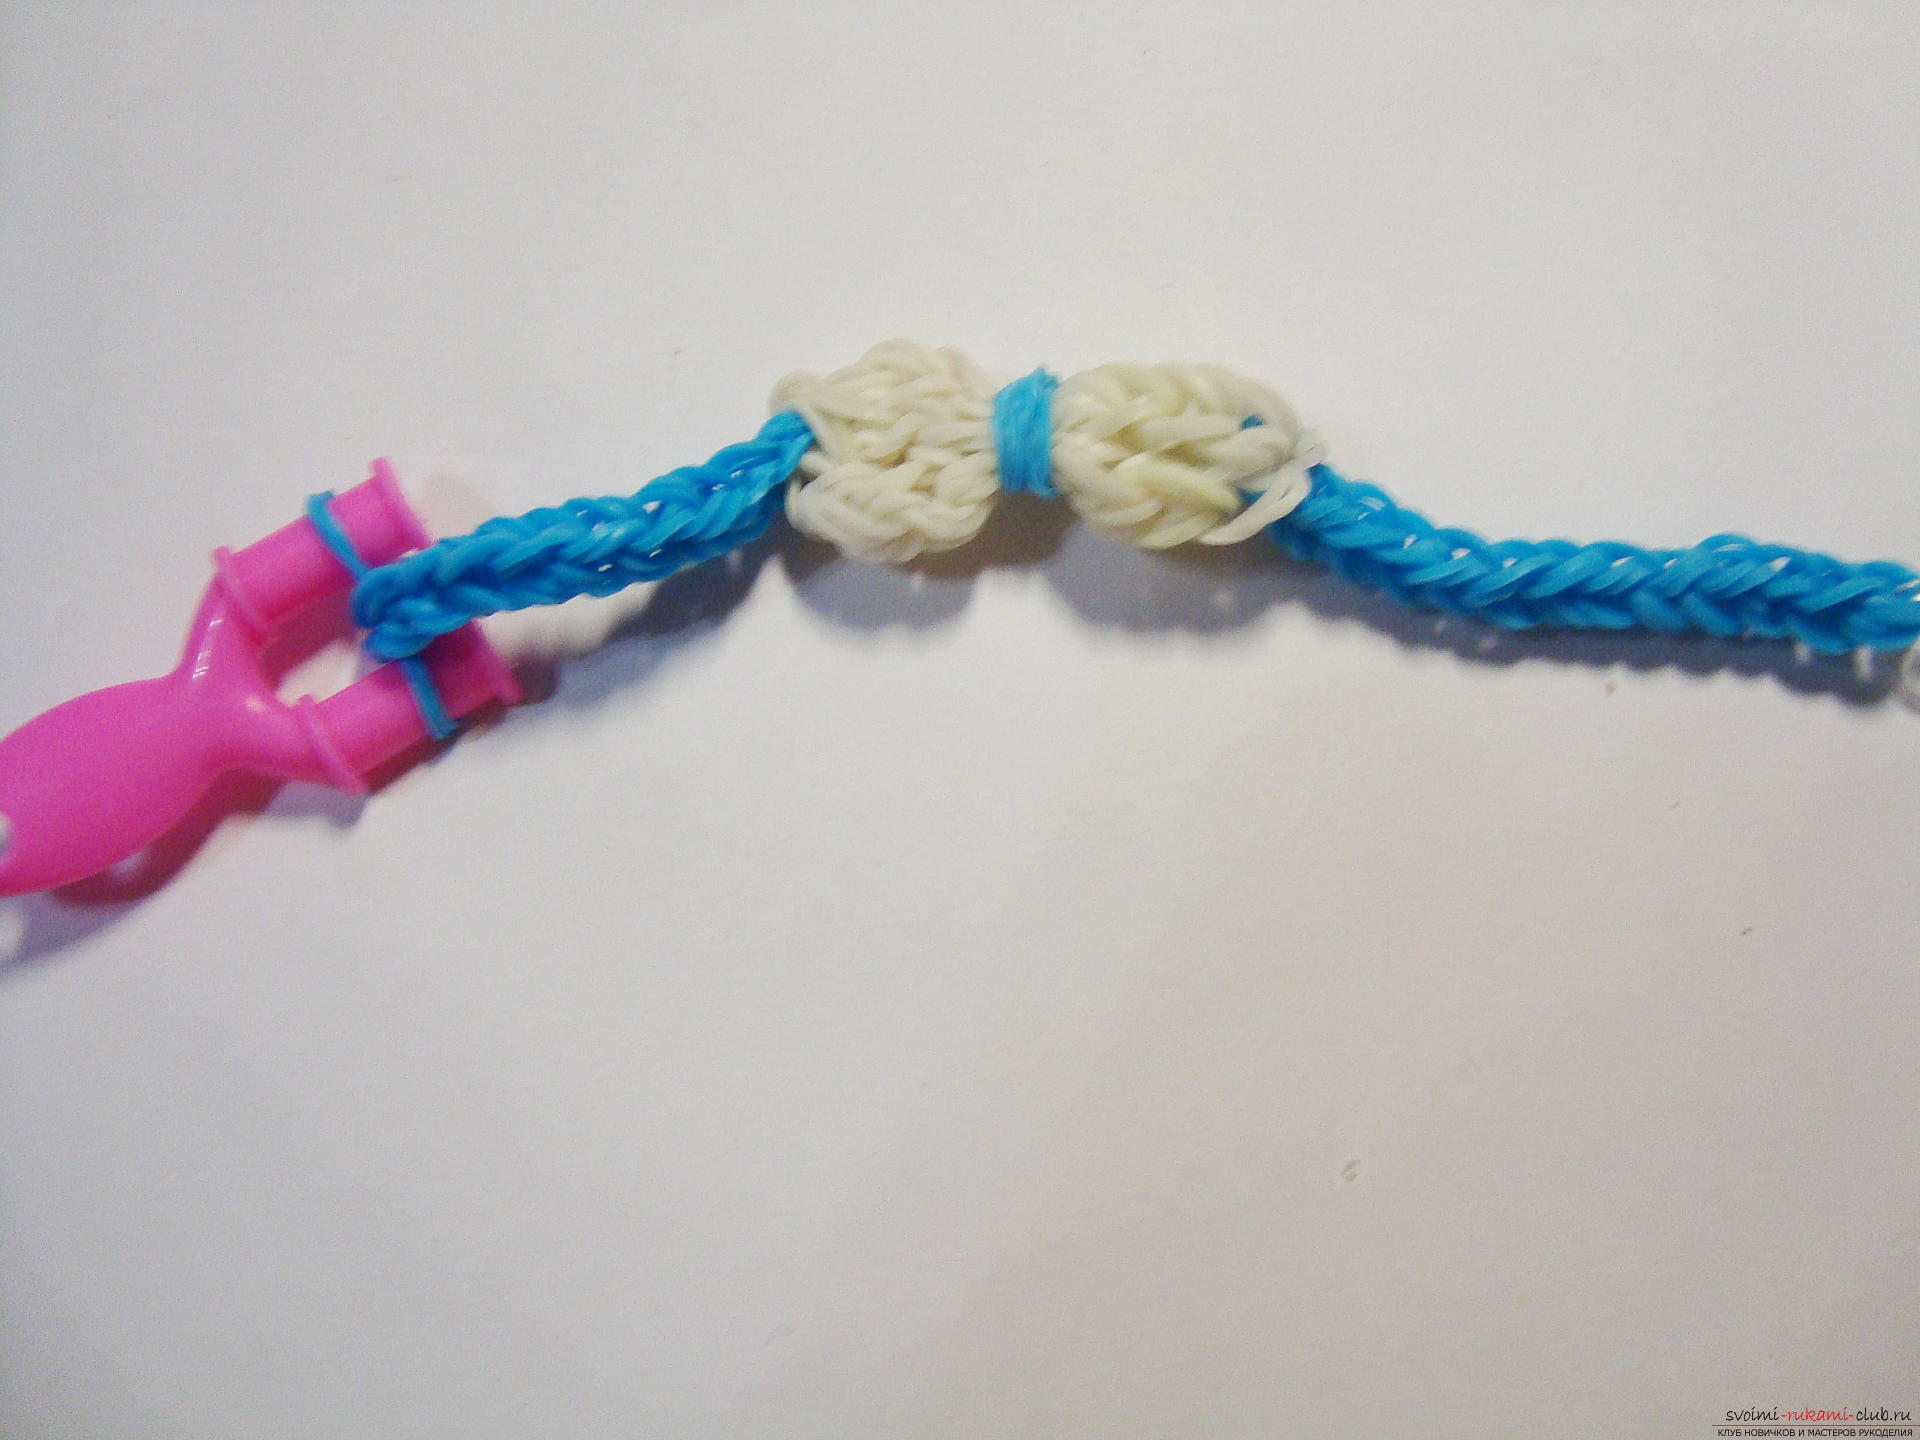 master class with a photo will teach you how to weave fashionable bracelets from rubber bands. Picture №10